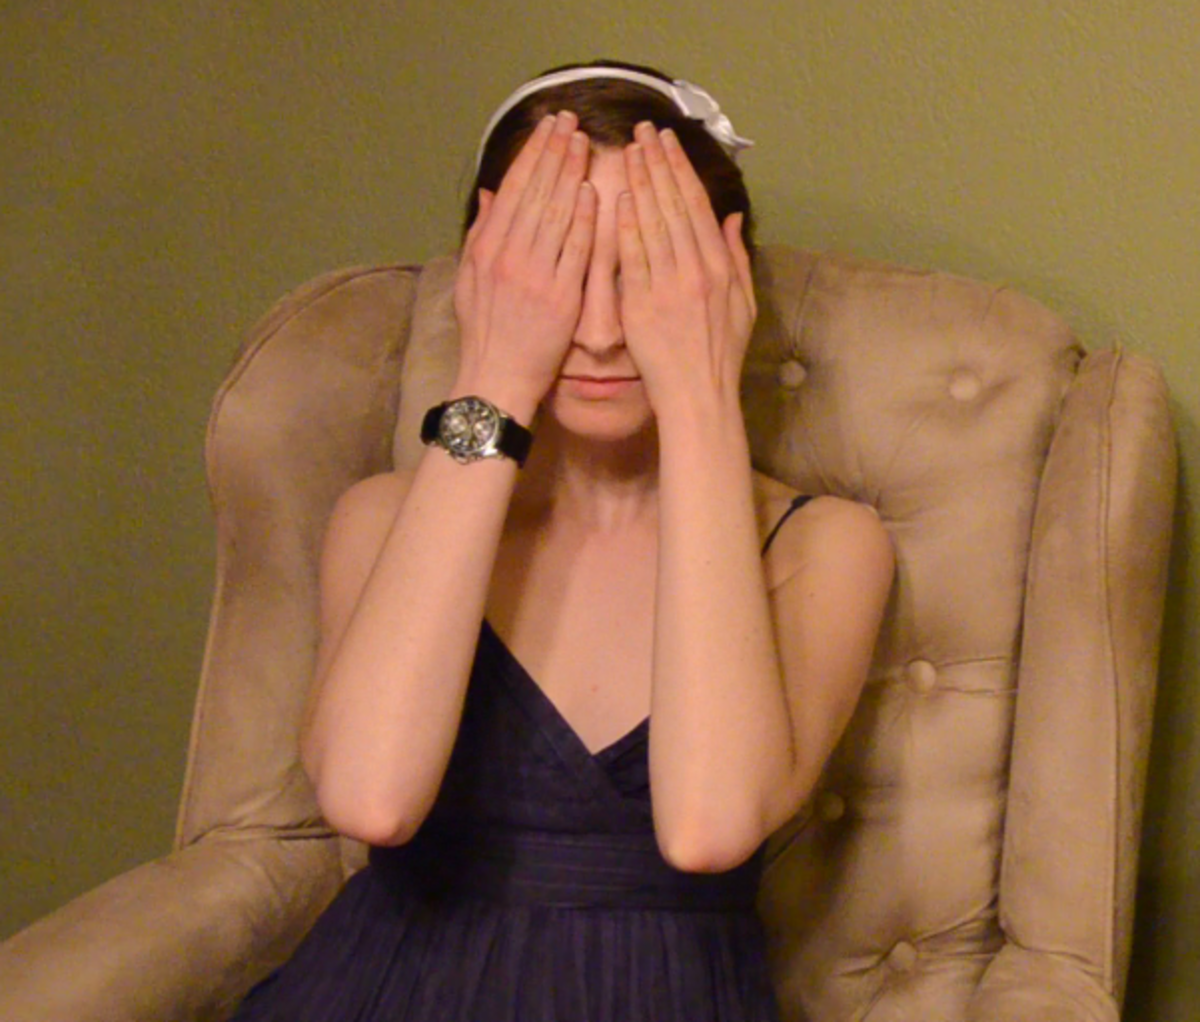 The Weeping Angel: Don't Blink!